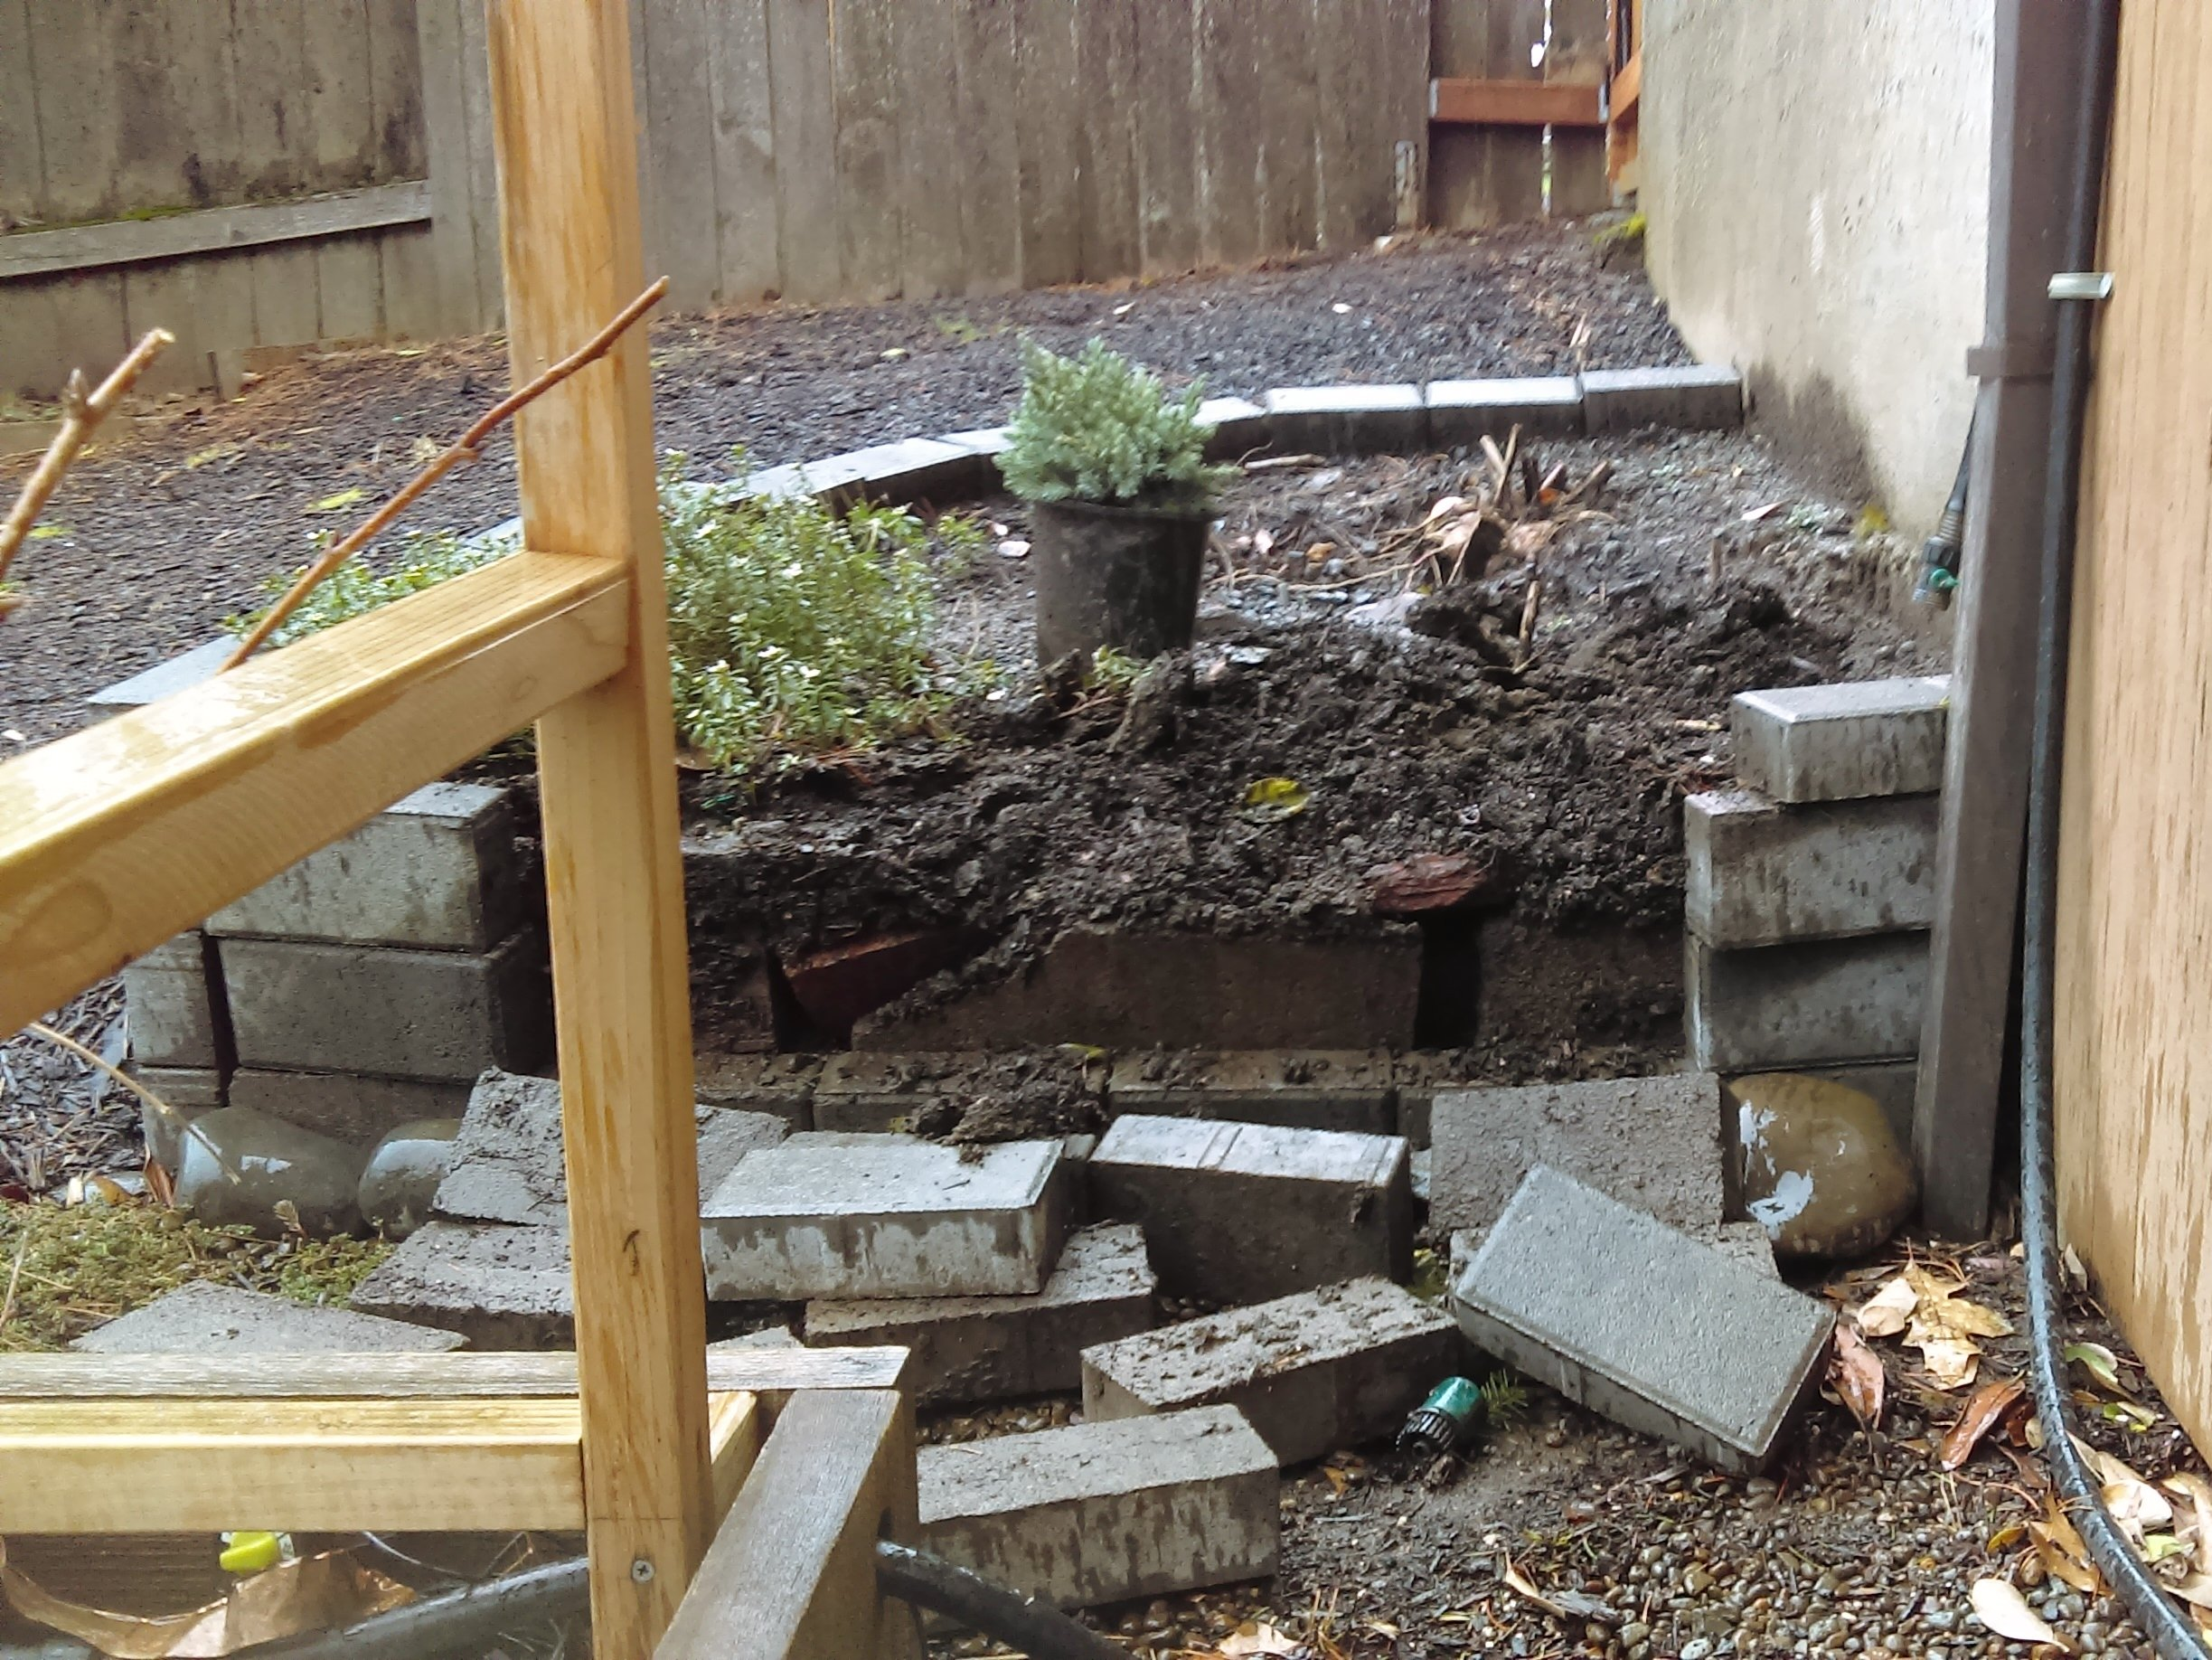 Falling bricks in loosely stacked planter